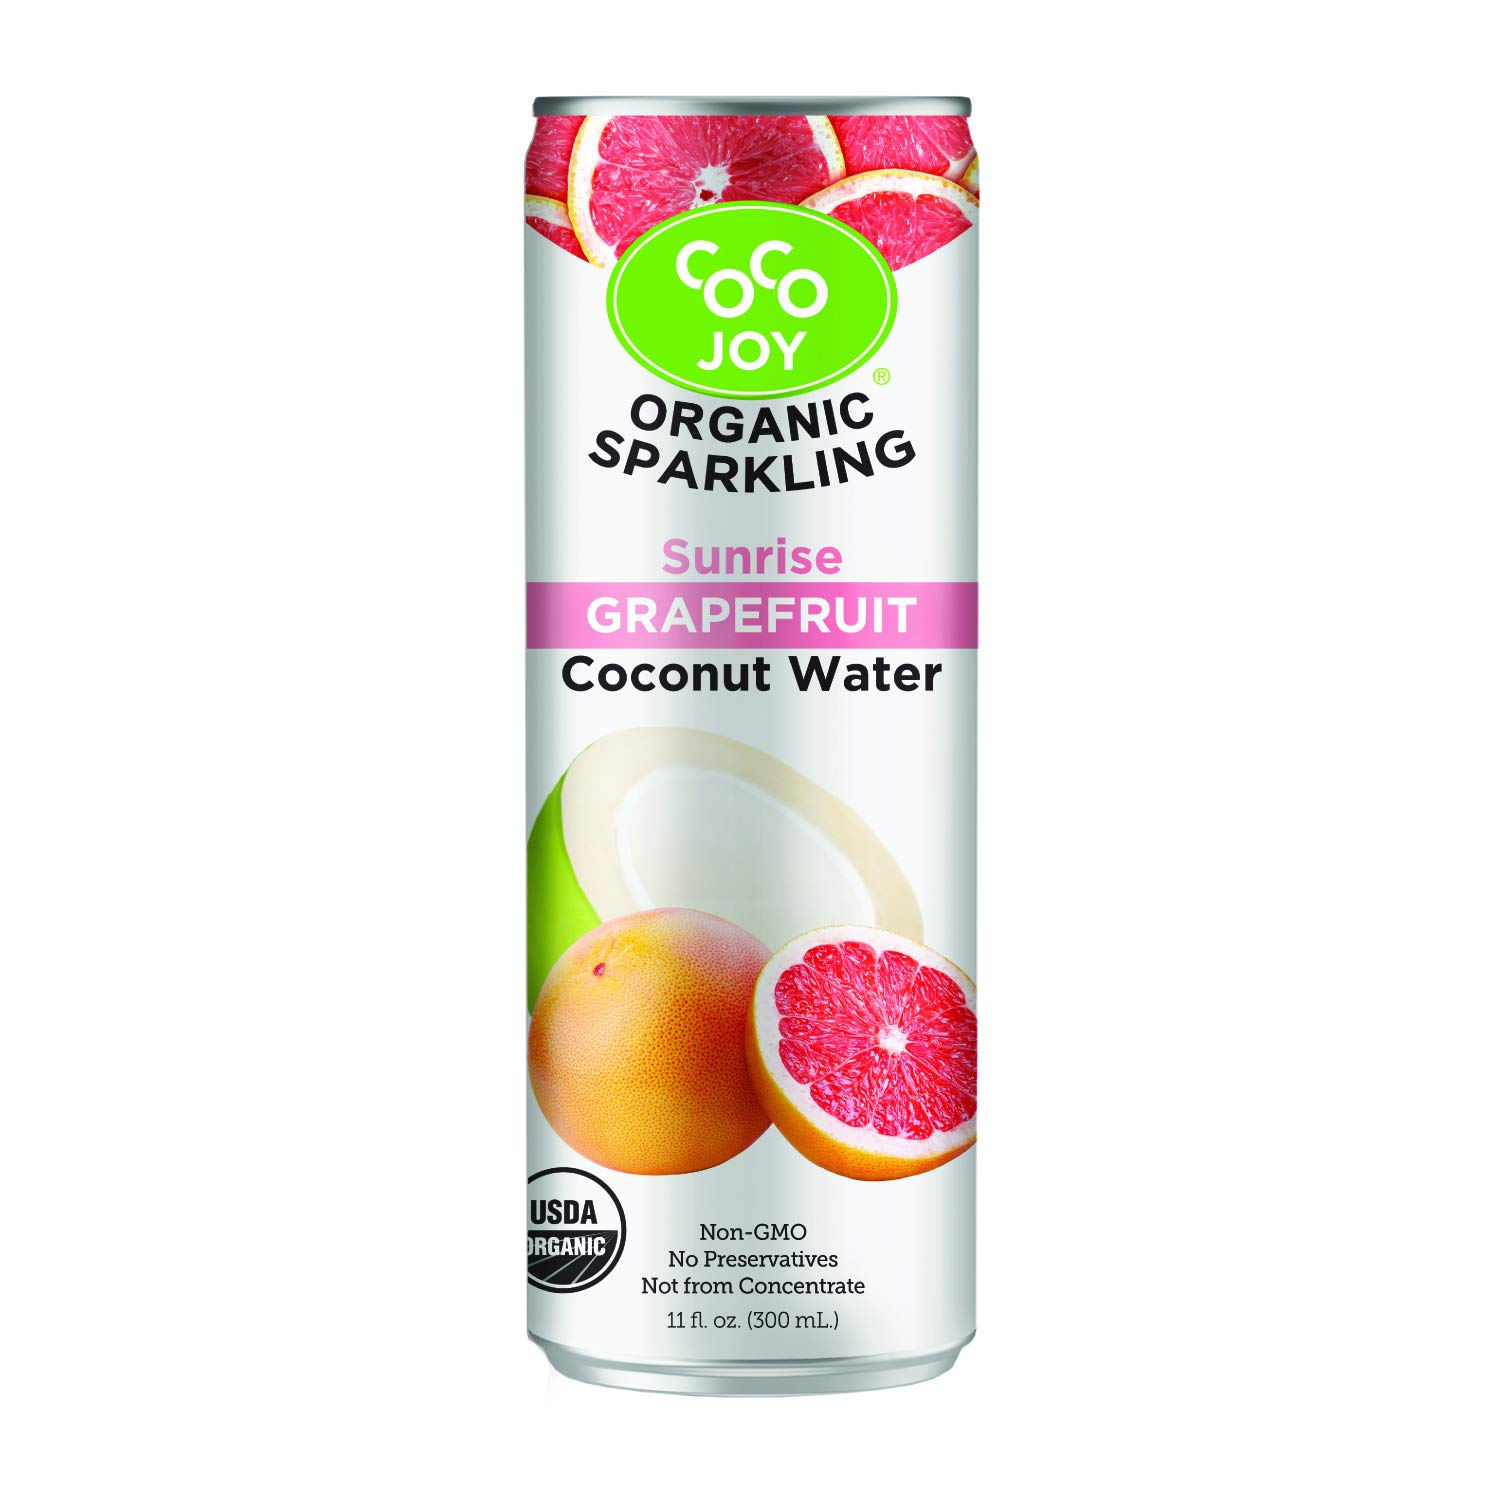 100% Organic Premium Sparkling Coco Joy Coconut Water 11 Fl oz Can - Sunrise Grapefruit - 12 Pack - Refreshing, Non-GMO, Packed with Electrolytes, No Preservatives